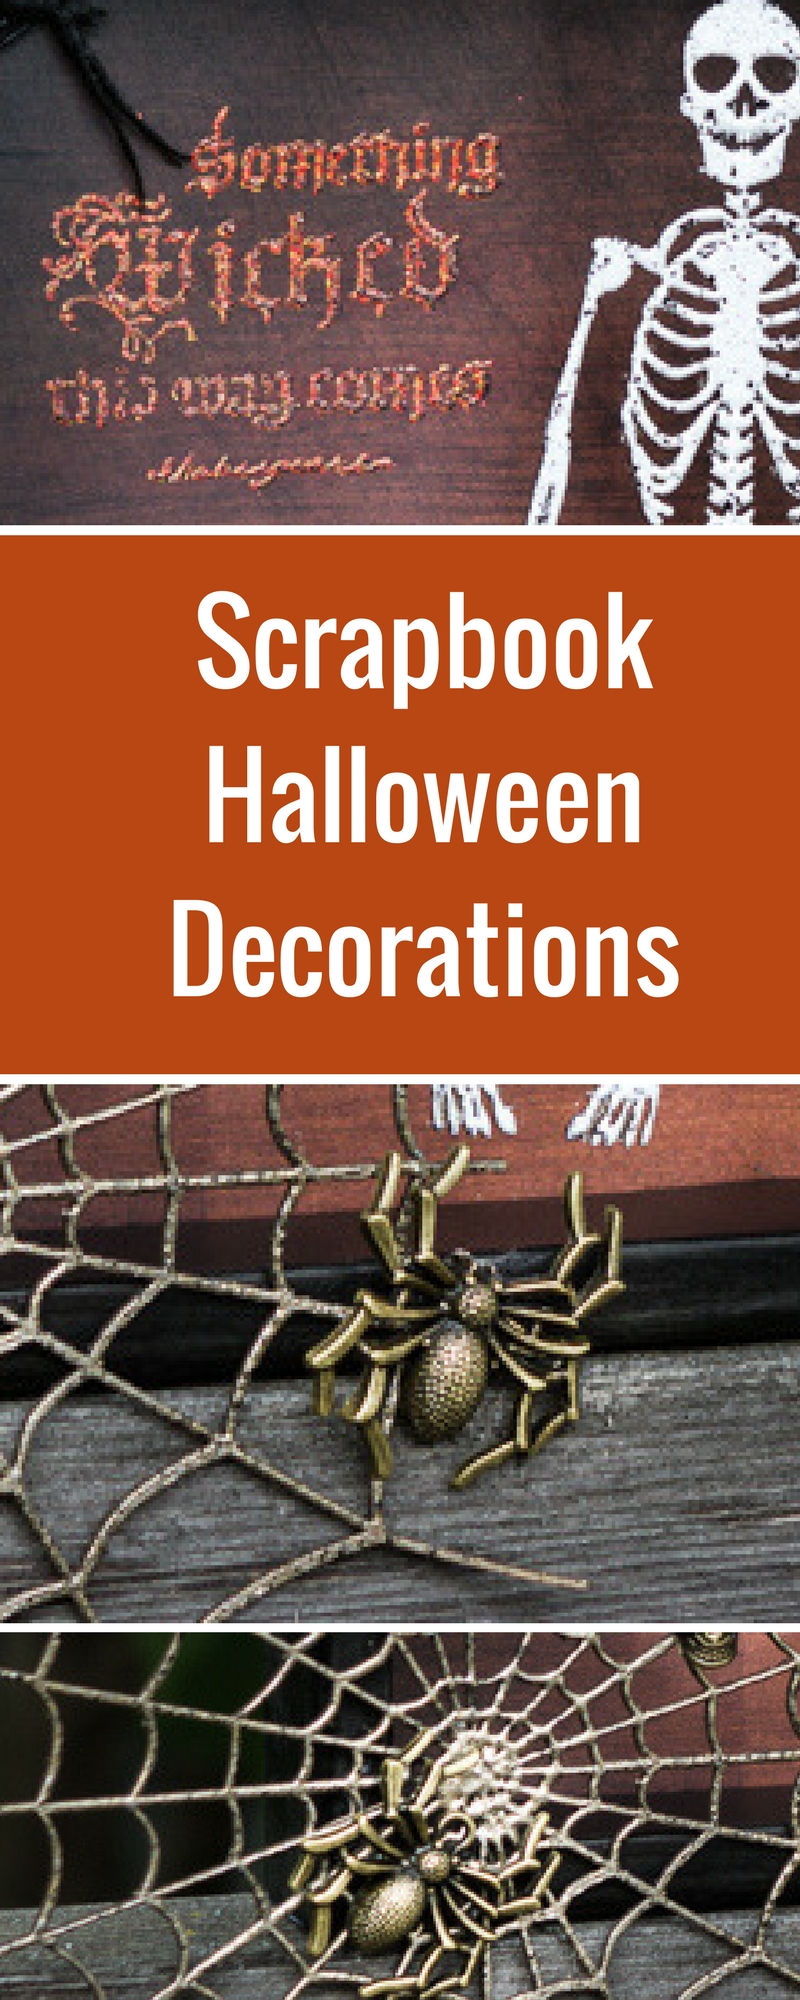 Halloween Home Decor | Scrapbooking Halloween | Featuring Emerald Creek Craft Supplies and Southern Ridge Trading Co. | Designed by Kim Gowdy | Creative Scrapbooker Magazine #Halloween #scrapbooking #homedecor